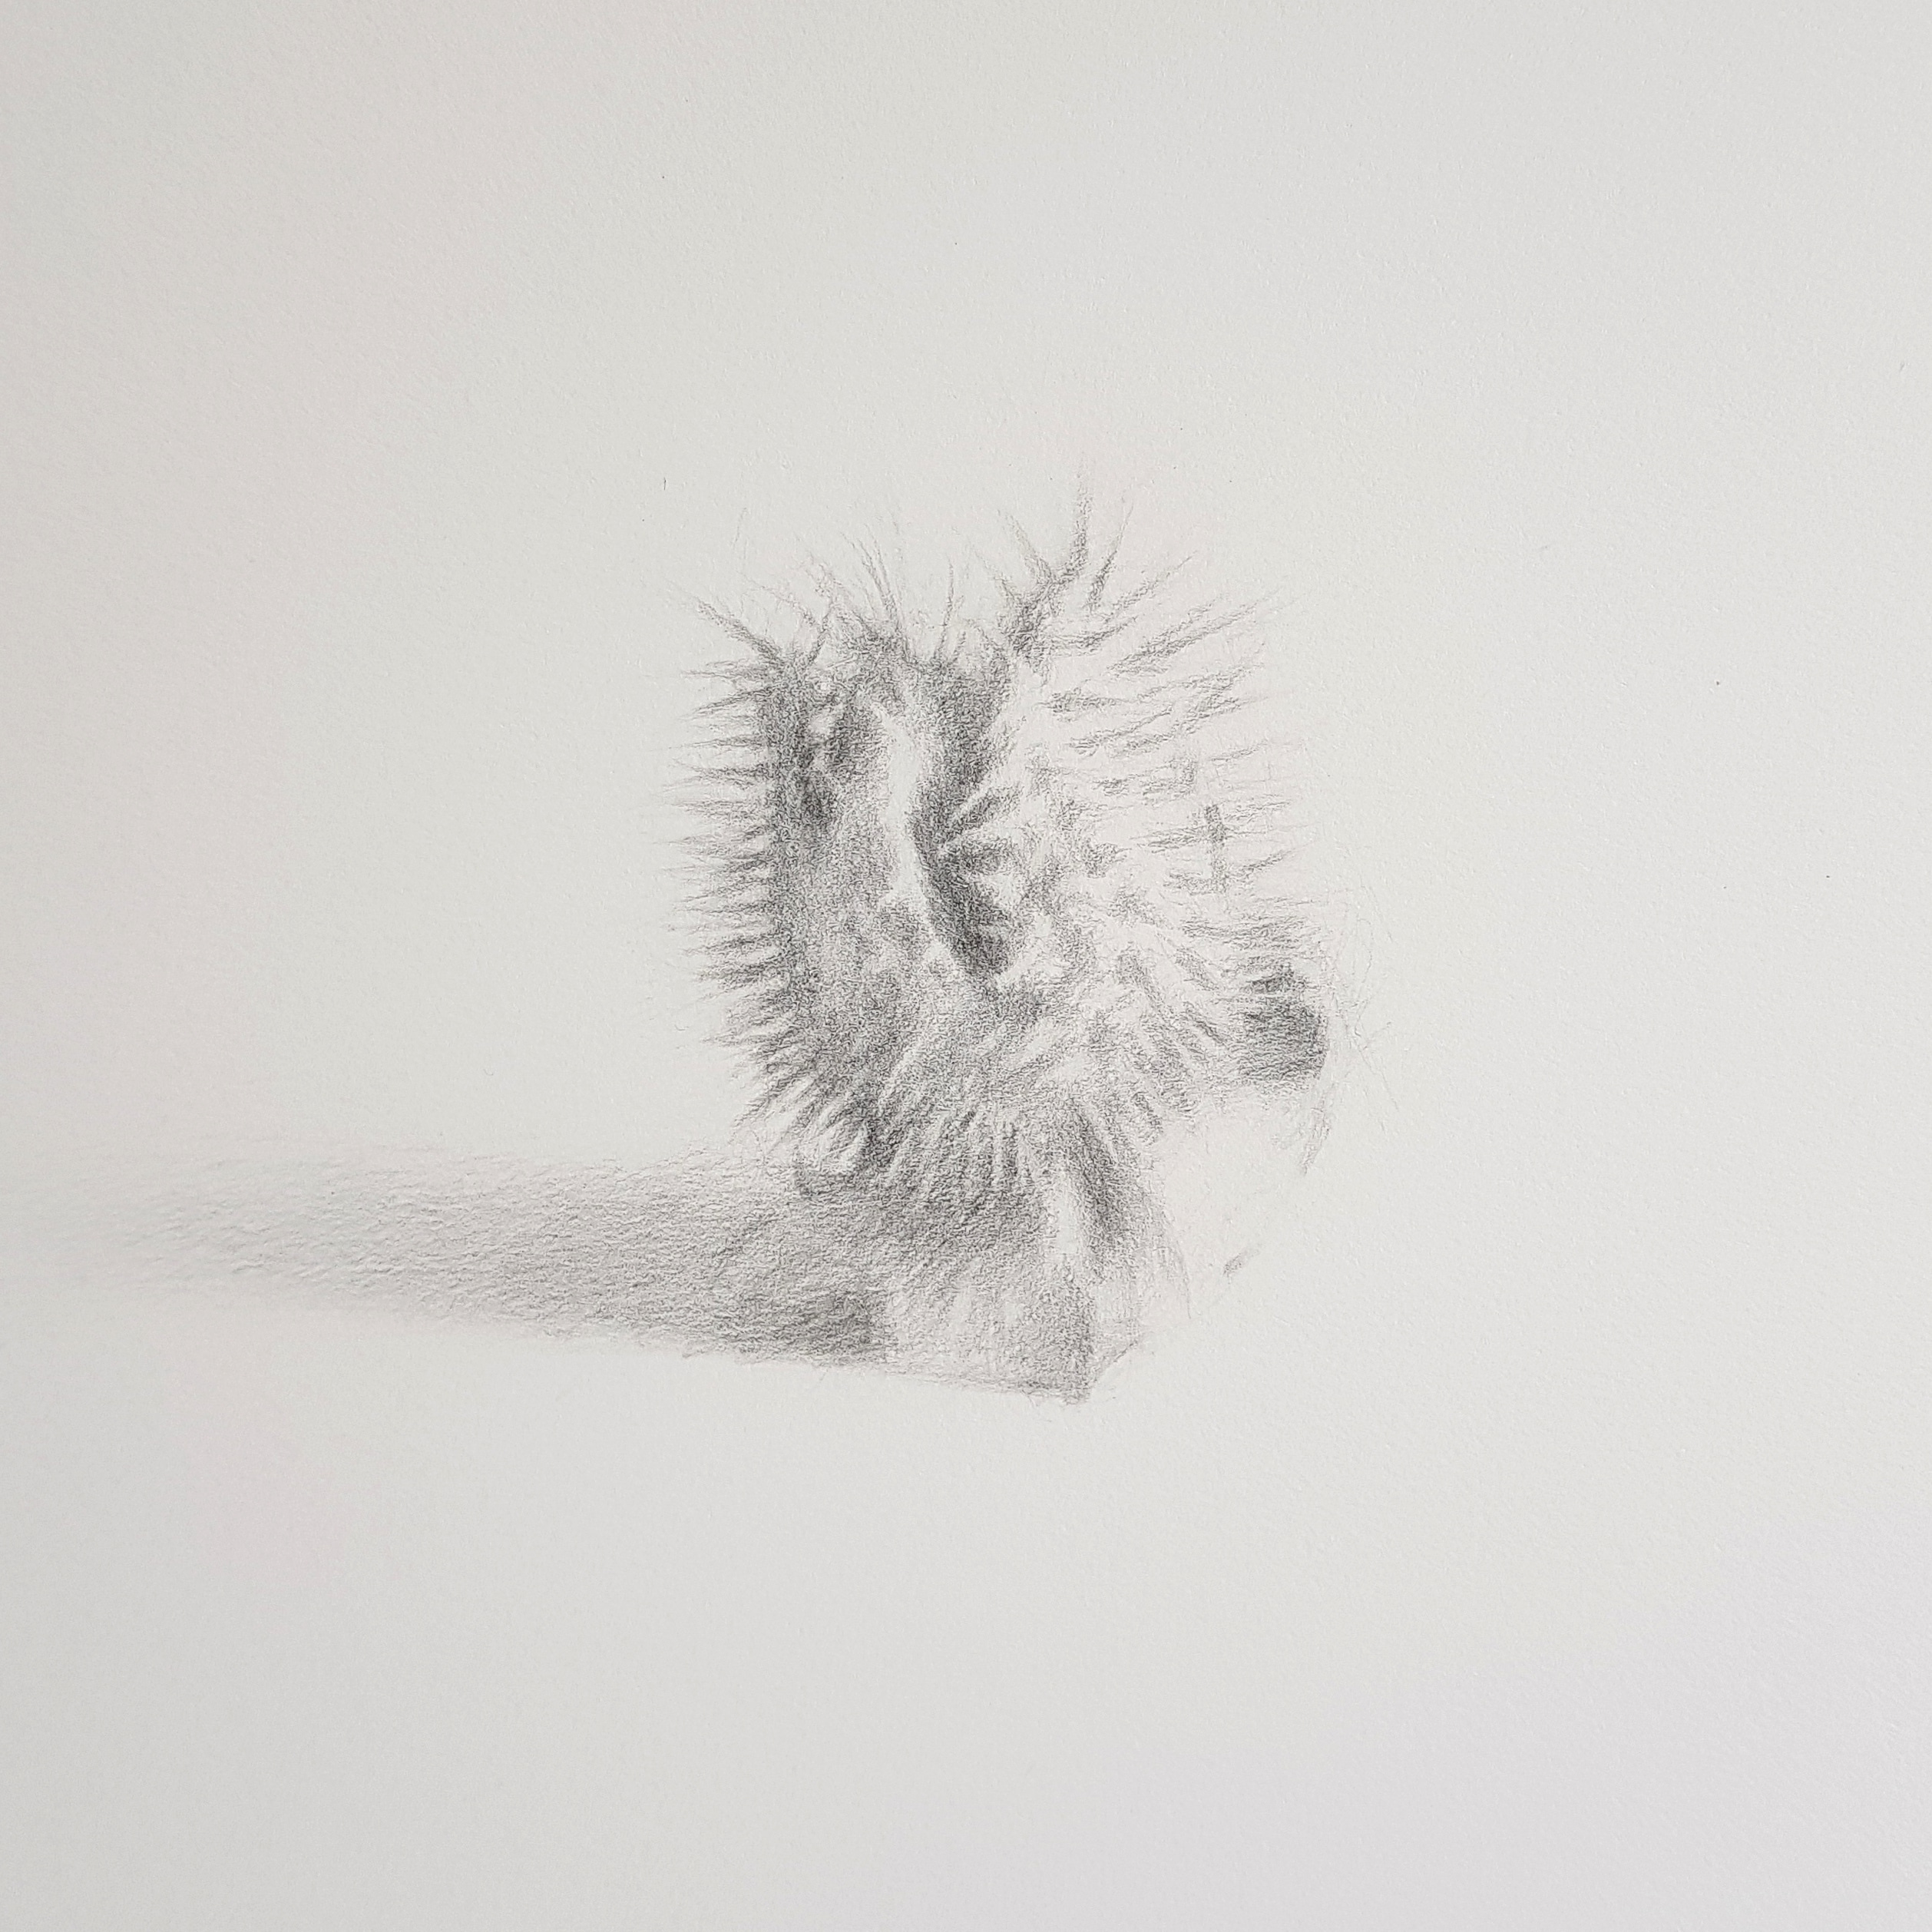 Untitled, Graphite on paper, 2018